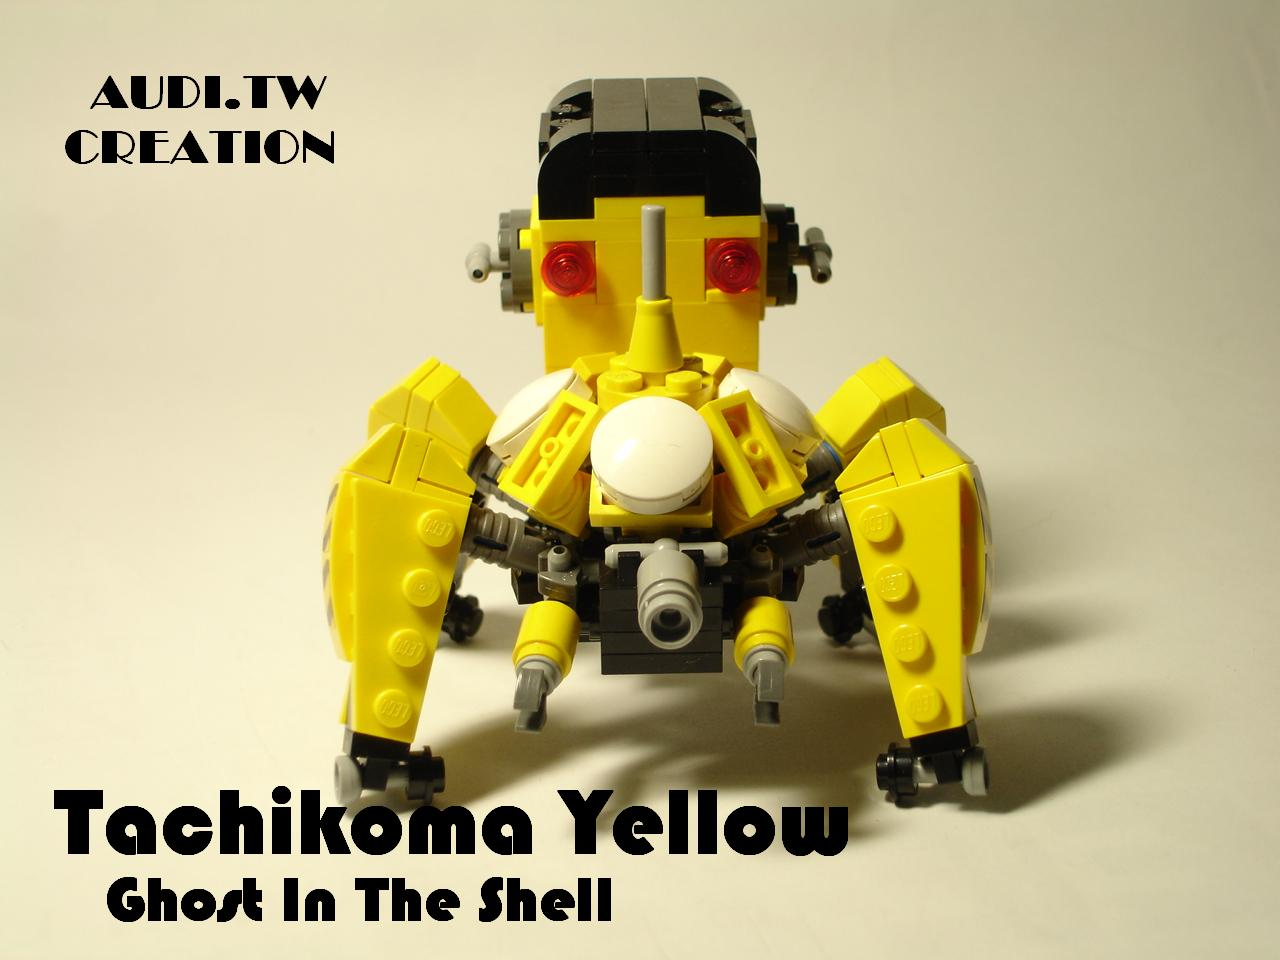 001-tachikoma_yellow.jpg